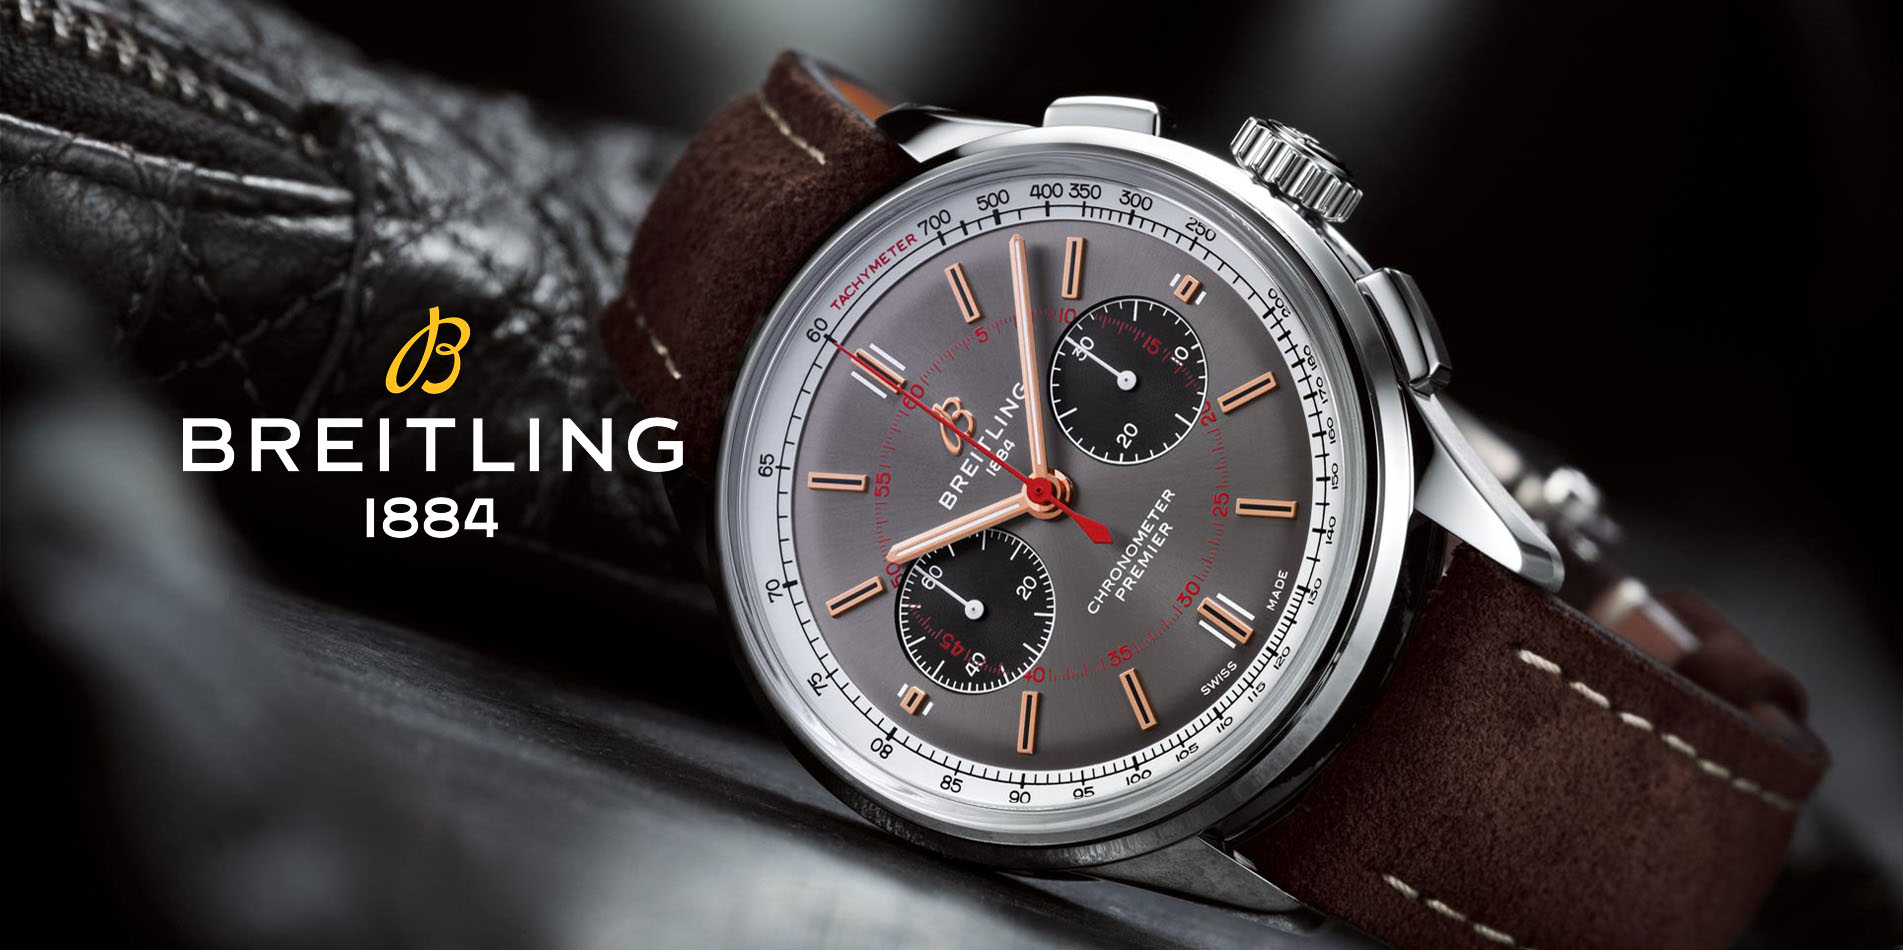 replica Breitling watches sale